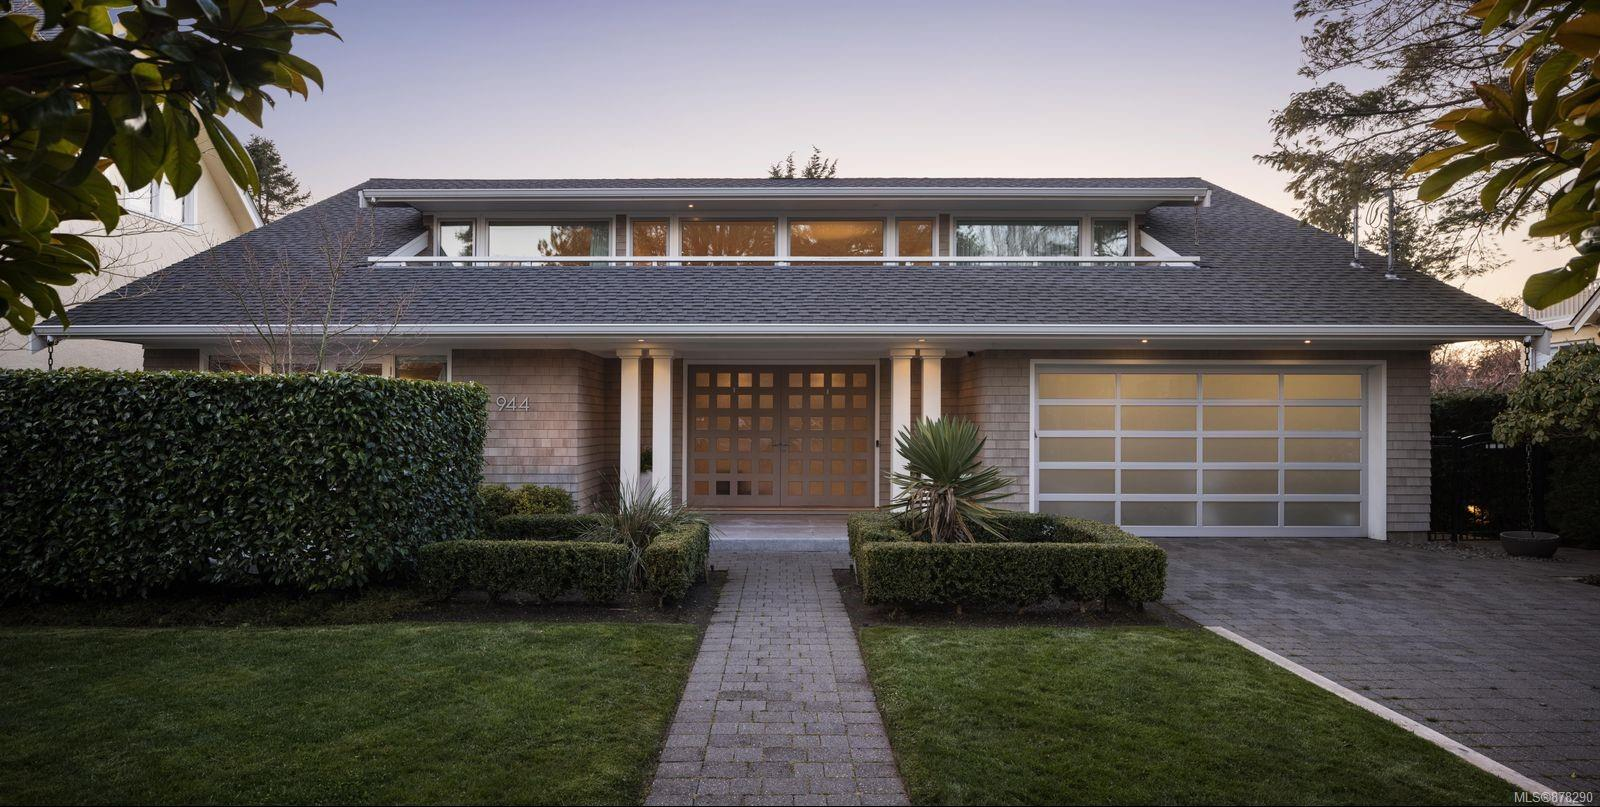 Introducing 944 Island Rd! Pure sophistication is epitomized through this custom built, Malibu inspired South Oak Bay masterpiece! One will be hard pressed to find a comparable to the architecturally designed features throughout. Step through the beautiful oversized pivot-hinged front door & be truly captivated w/the natural light & warmth captured by the 17' ceilings that greet you! Immediately you will be drawn to the exquisite Great room, draped in light through 12' floor-to-ceilings windows, showcasing a Statuario Marble Gas FP & leading to your Western exposed almost 13,000 sq/ft yard! Here you will be impressed by the privacy presented while you relax on one of your 3 Granite patios that overlook the large flat rear yard that is perfect for the kids or an infinity pool! Features include a spa-inspired Primary suite on the main, an elegant kitchen, a family/media room, 2 beds w/their own ensuites upstairs, a private alley in the rear while only steps to VGC, Beach Dr & OB Marina!